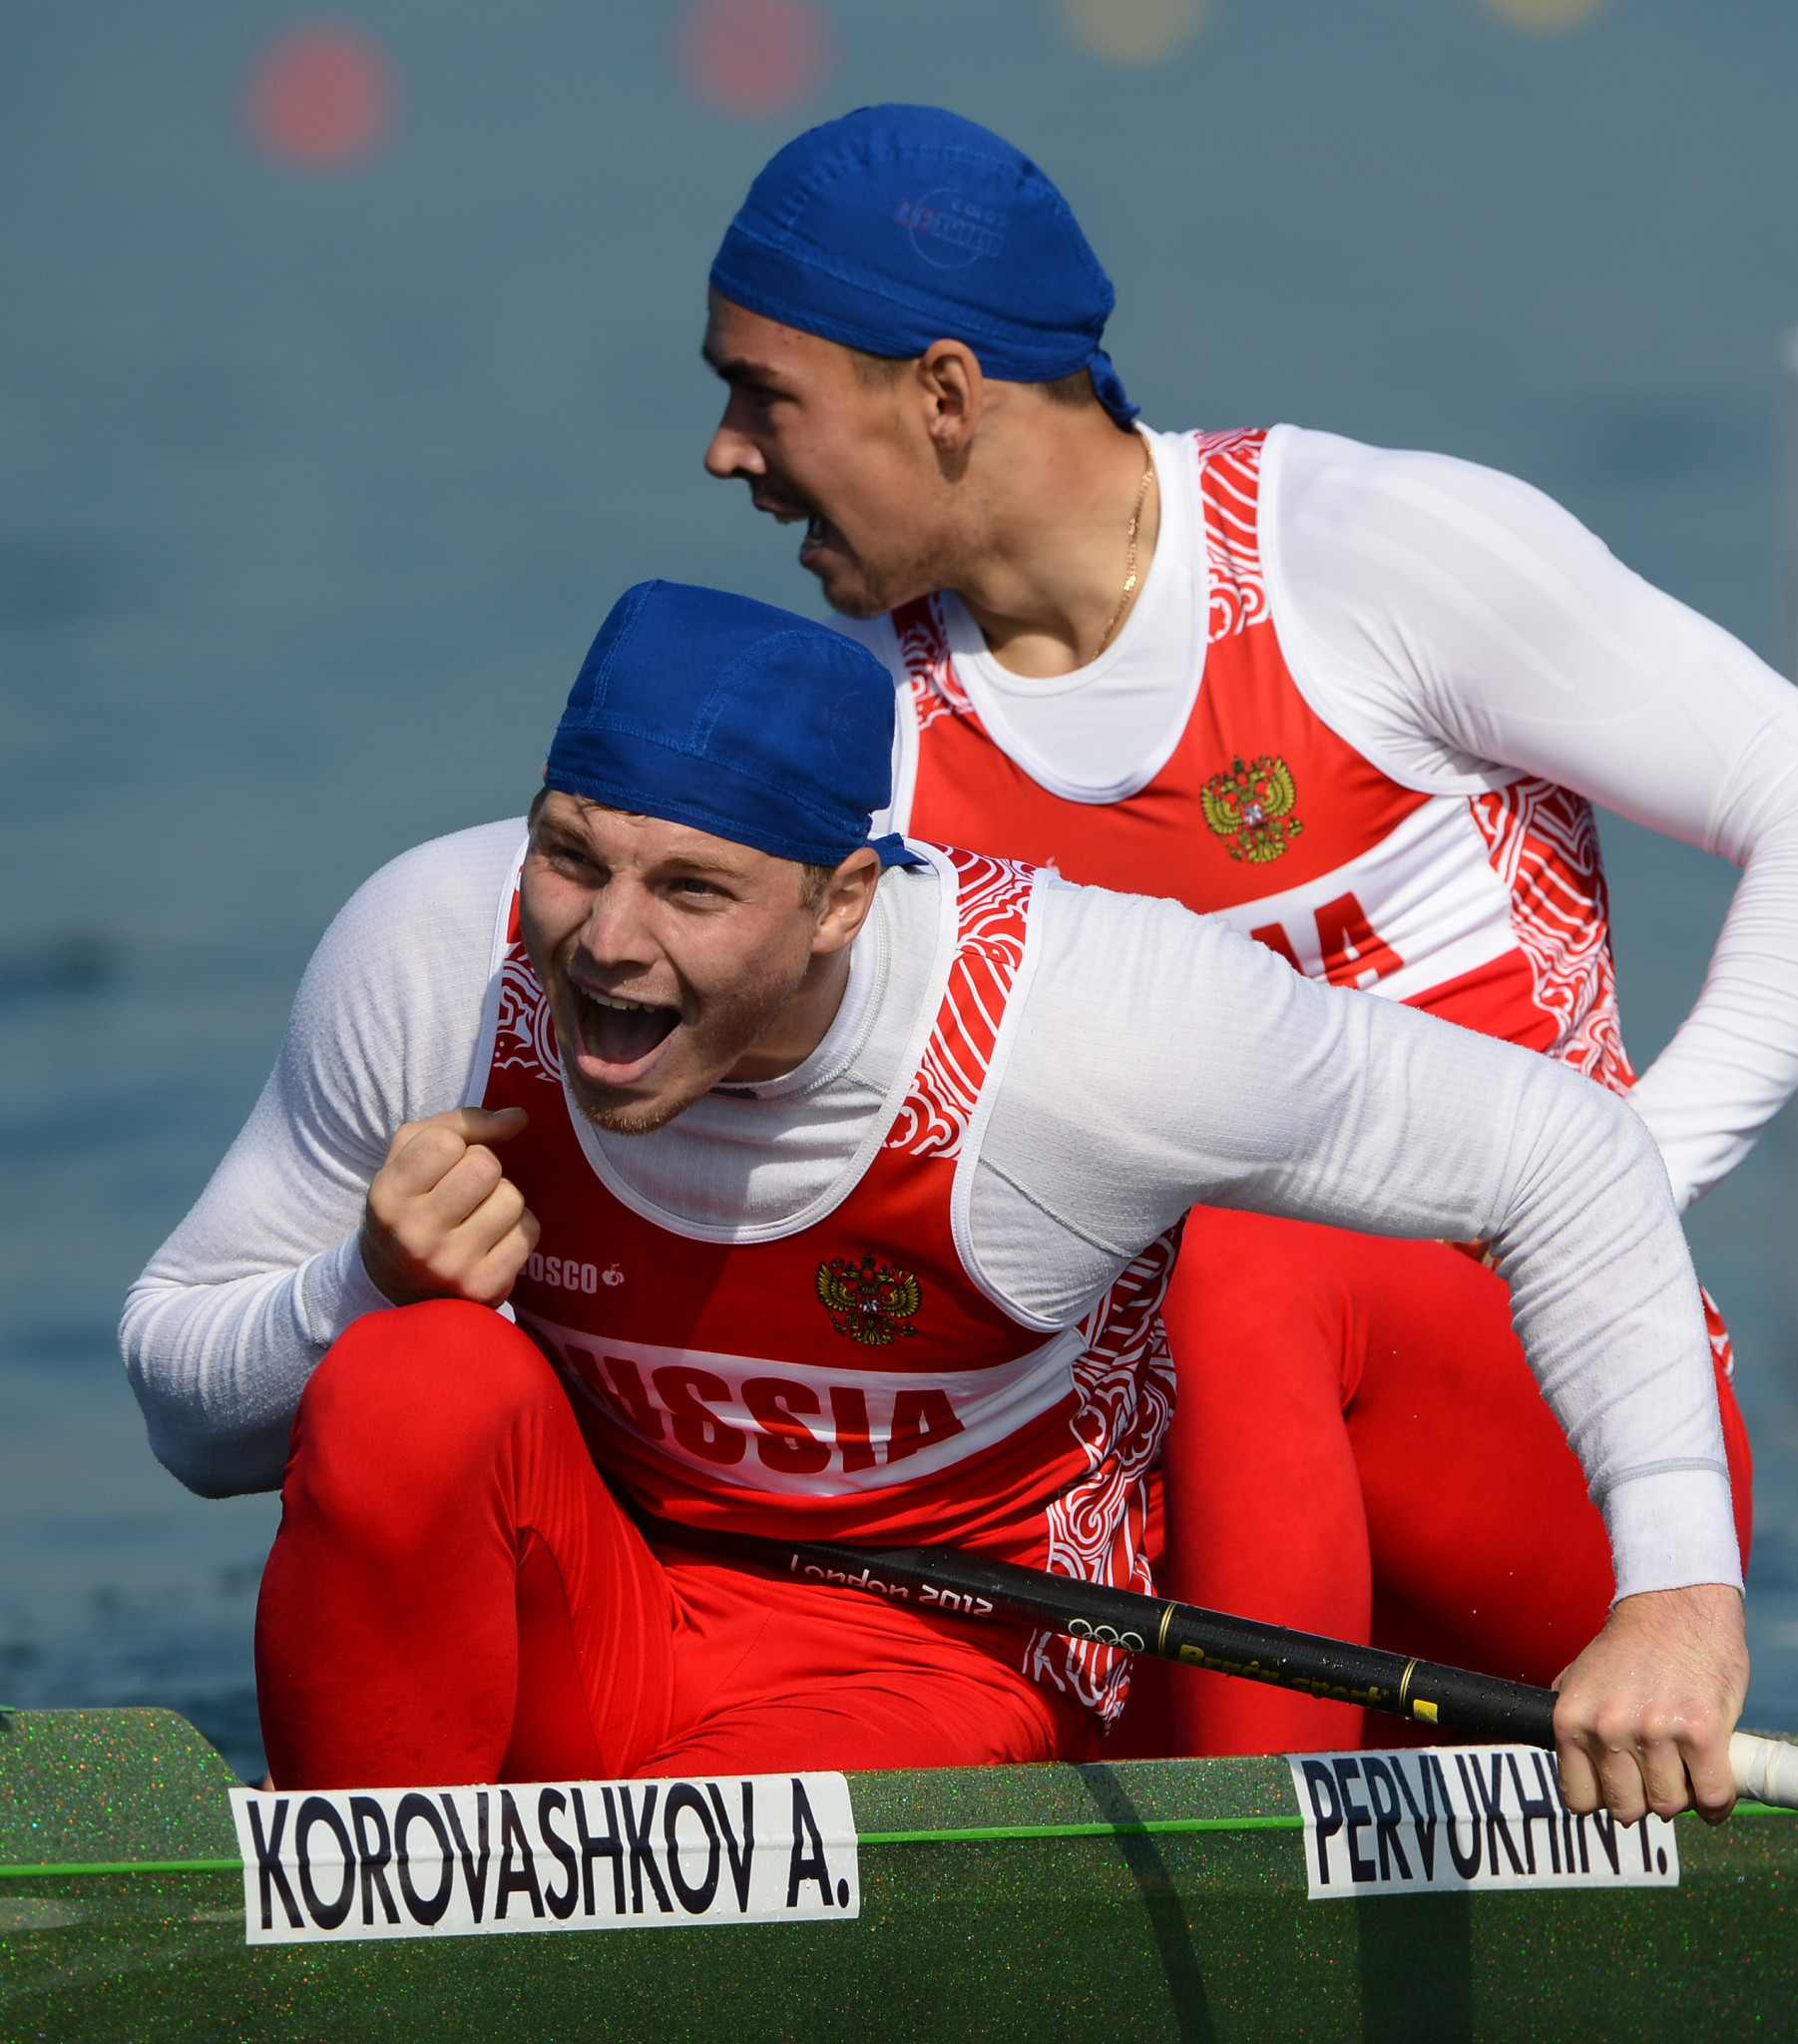 Russian sprint canoeist banned for doping less than a month after RUSADA reinstatement